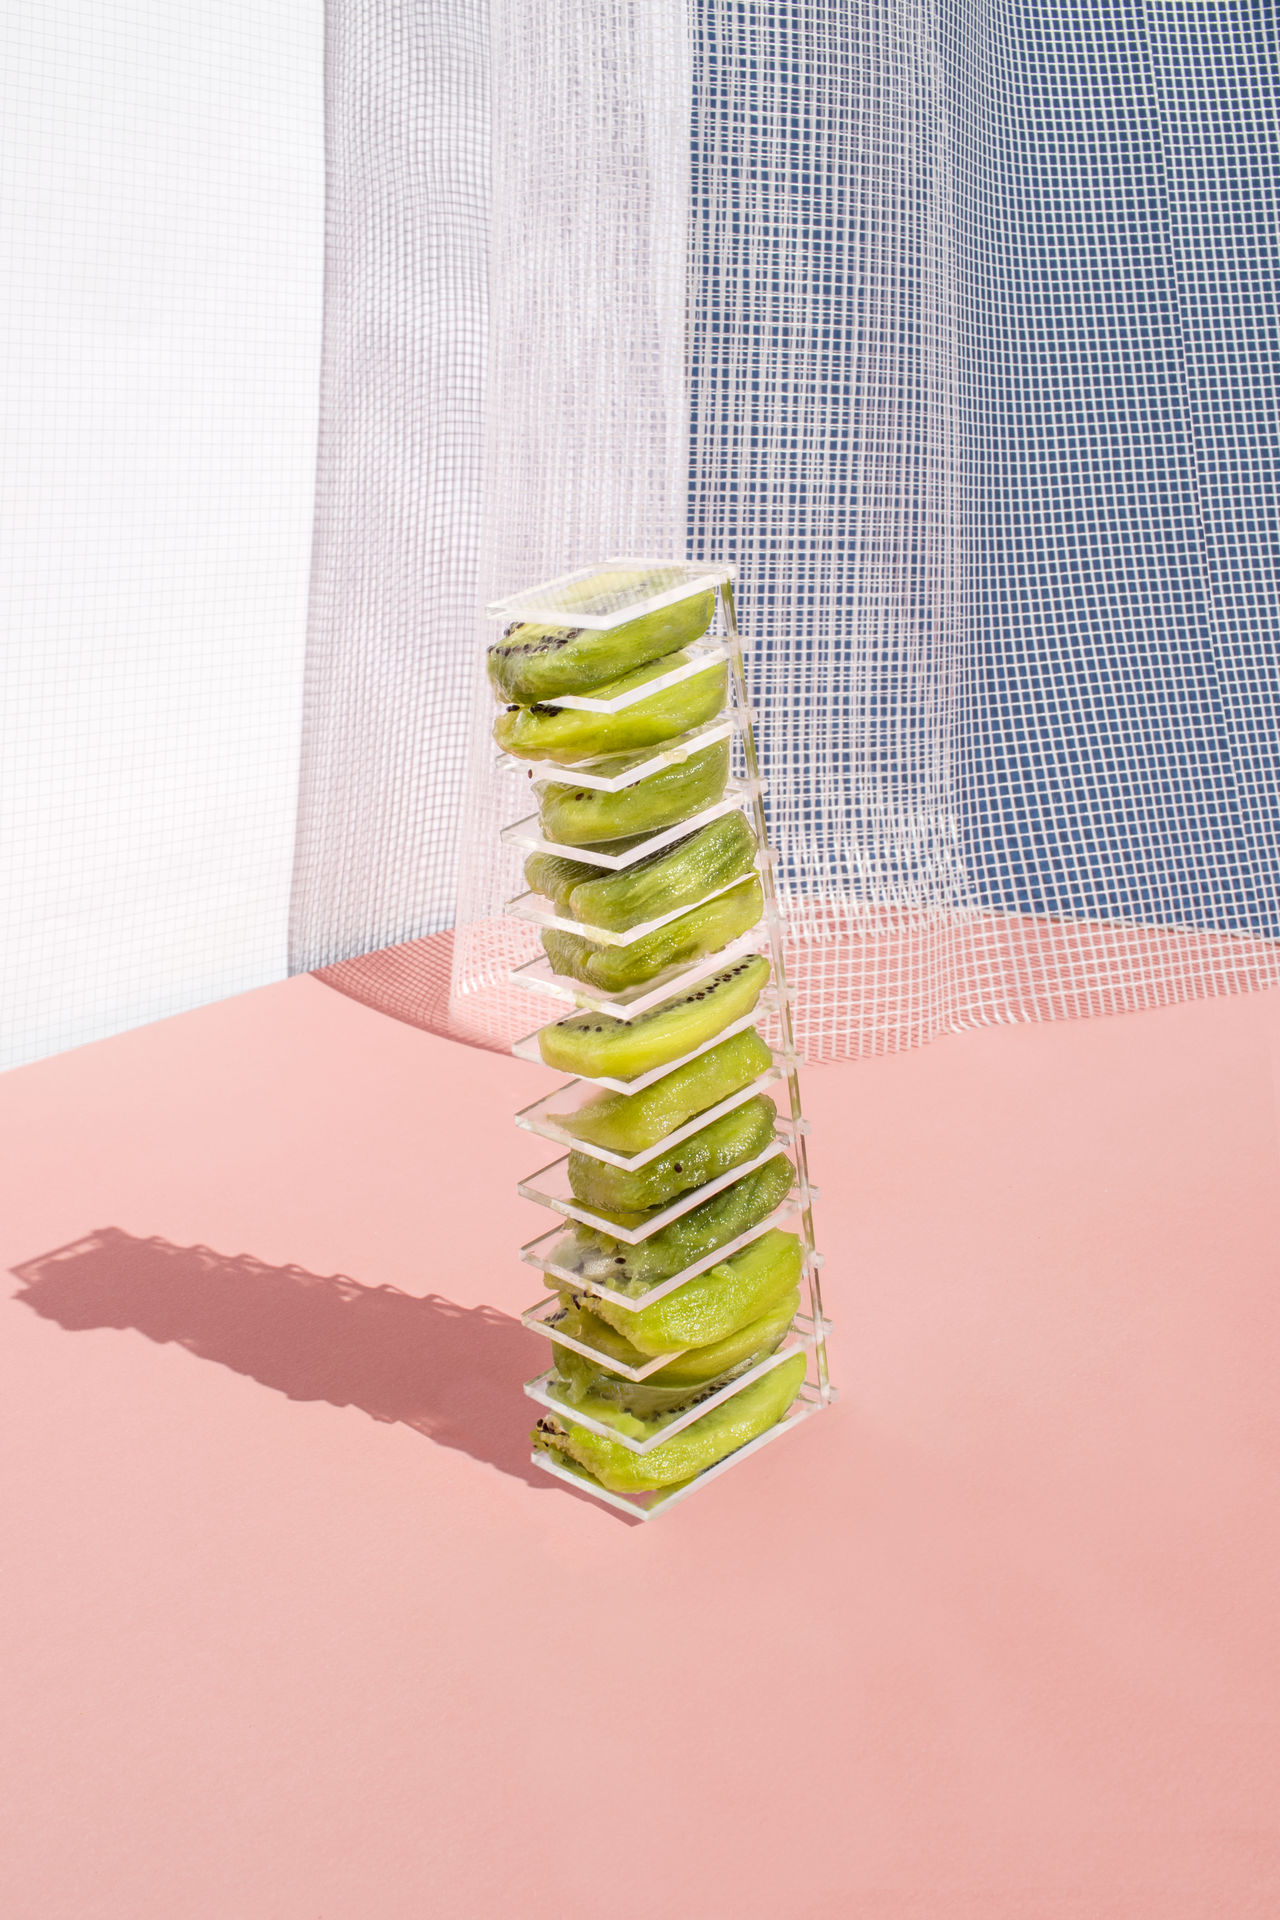 Close-up of fruit in stack on table